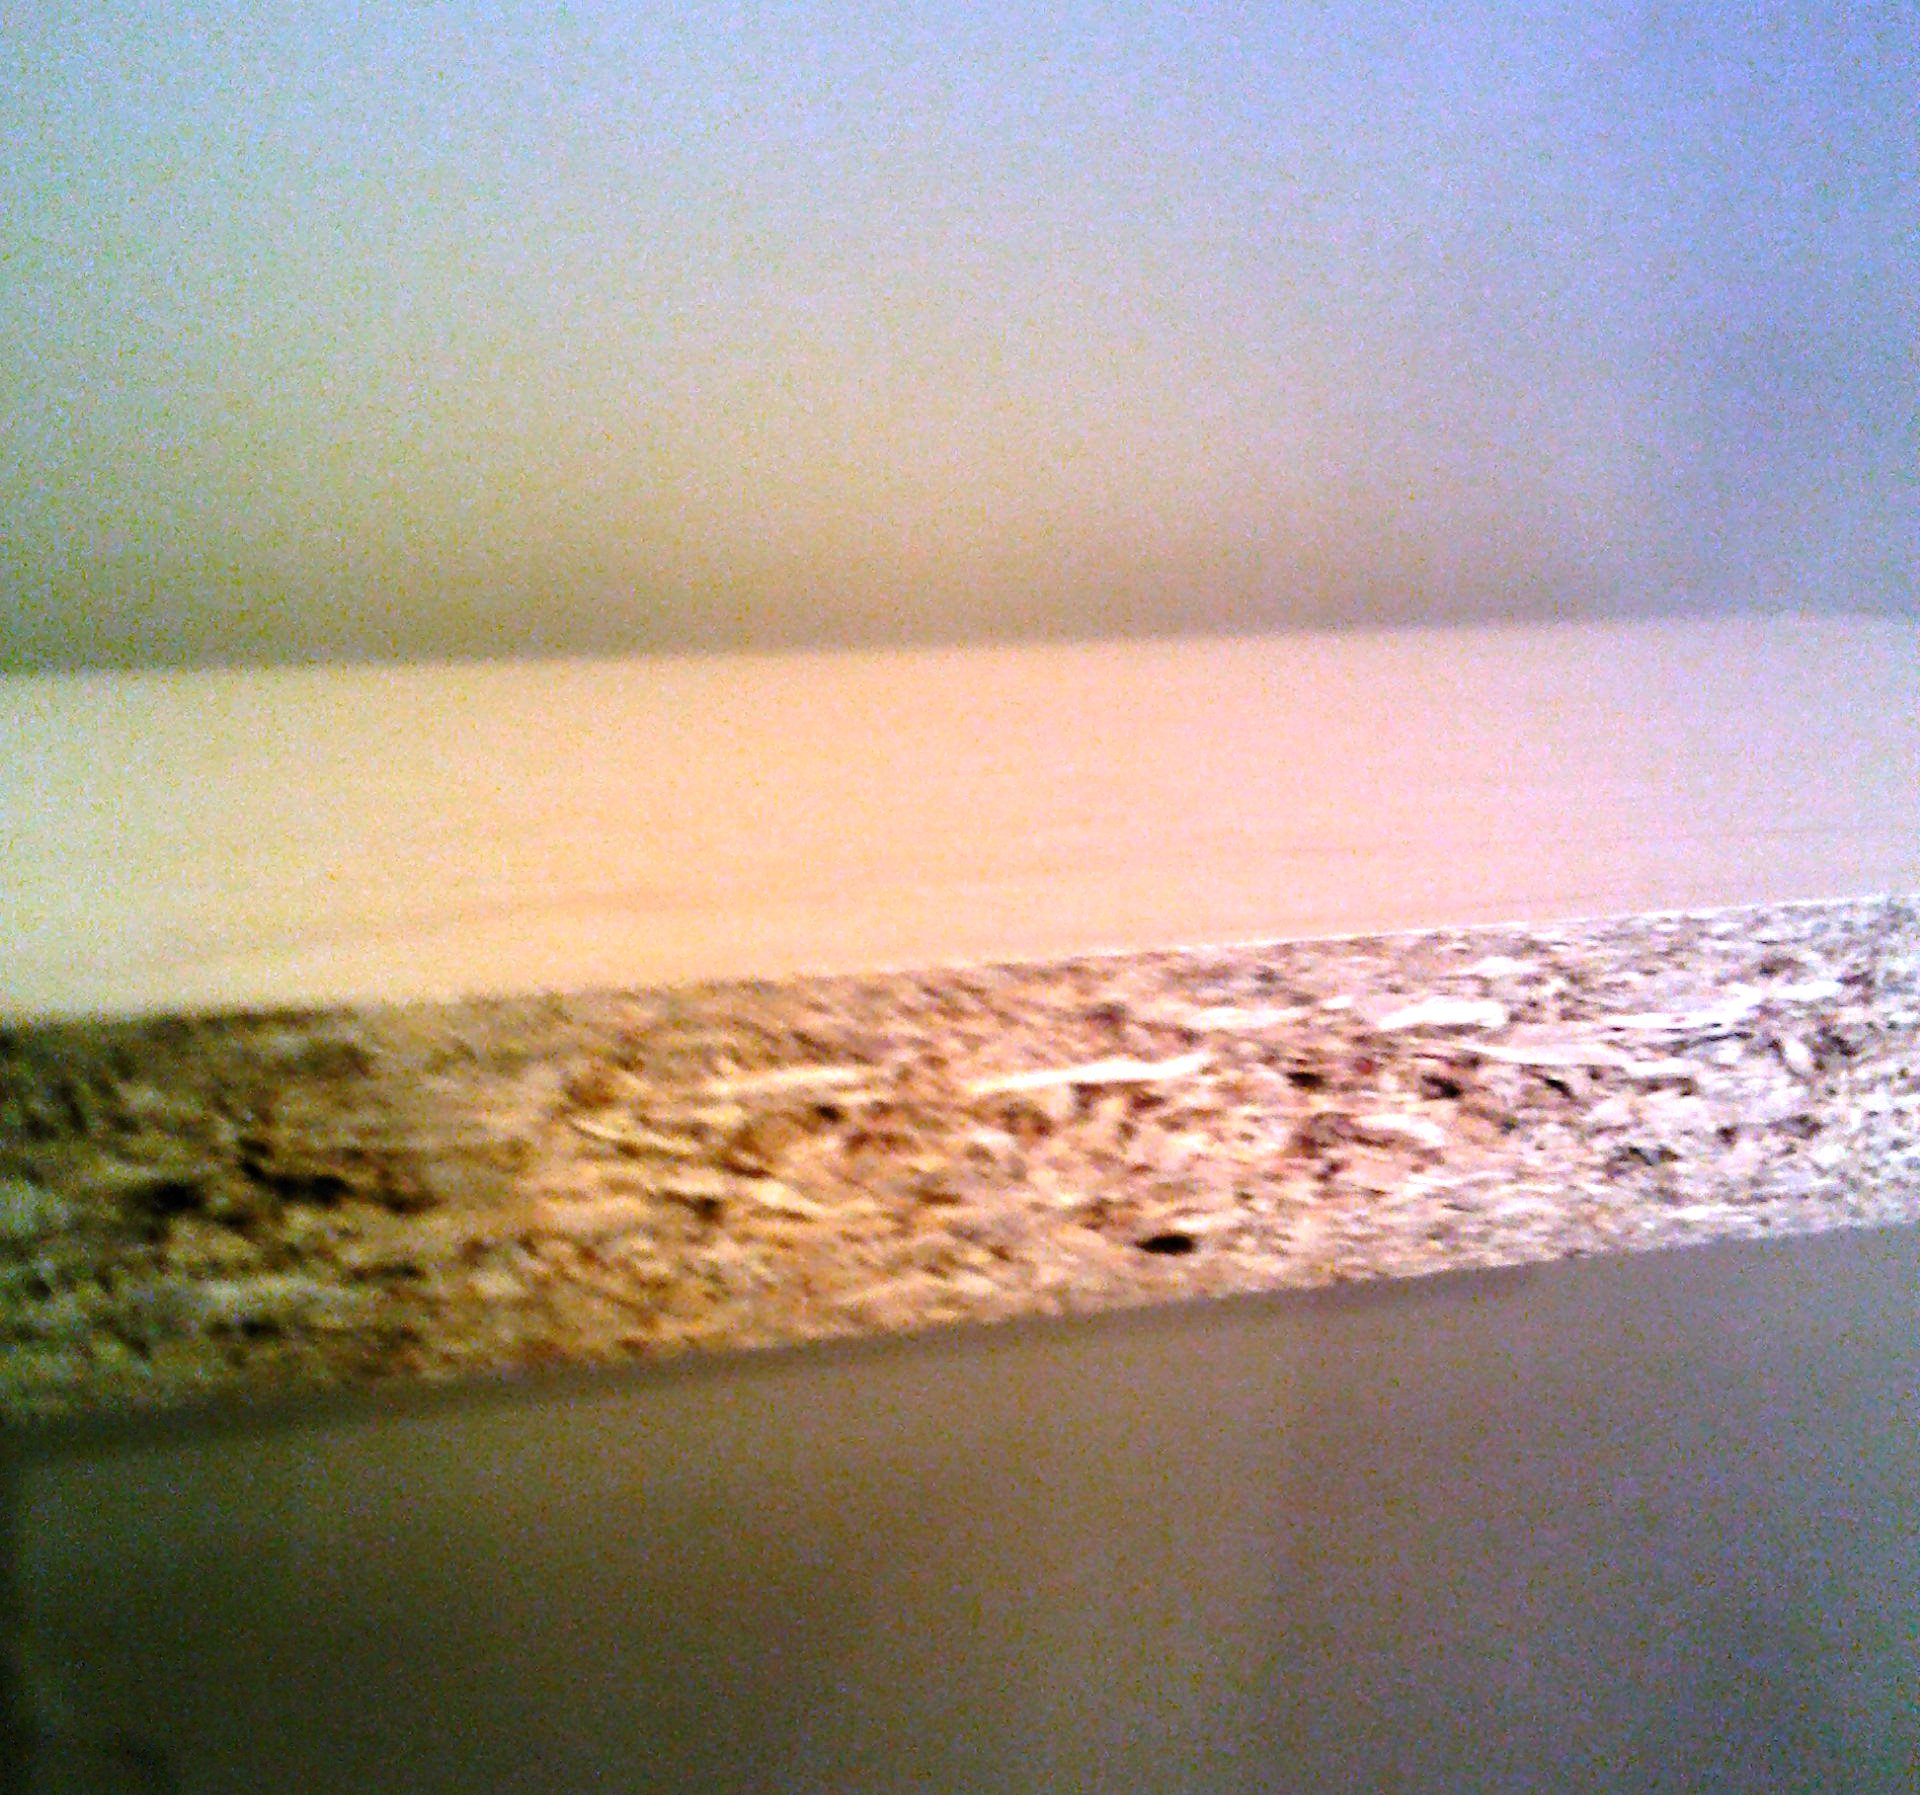 Plywood vs Particle Board Cabinets